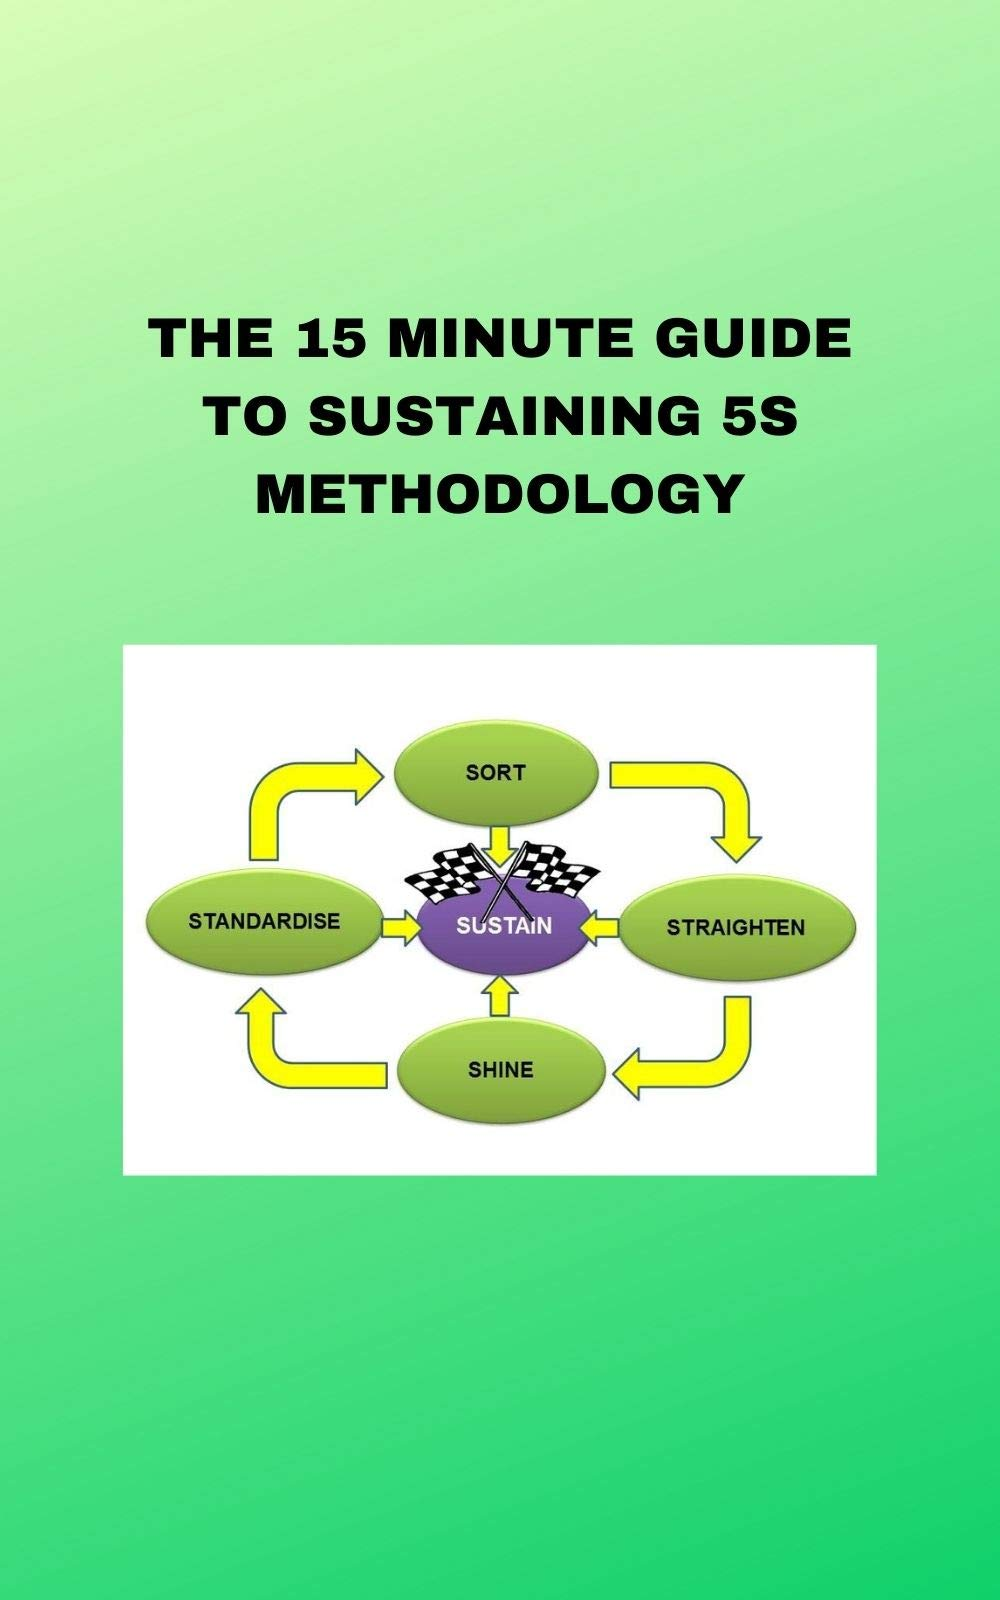 THE 15 MINUTE GUIDE TO SUSTAINING 5S METHODOLOGY: 15 Minute Guides to Workplace Skills